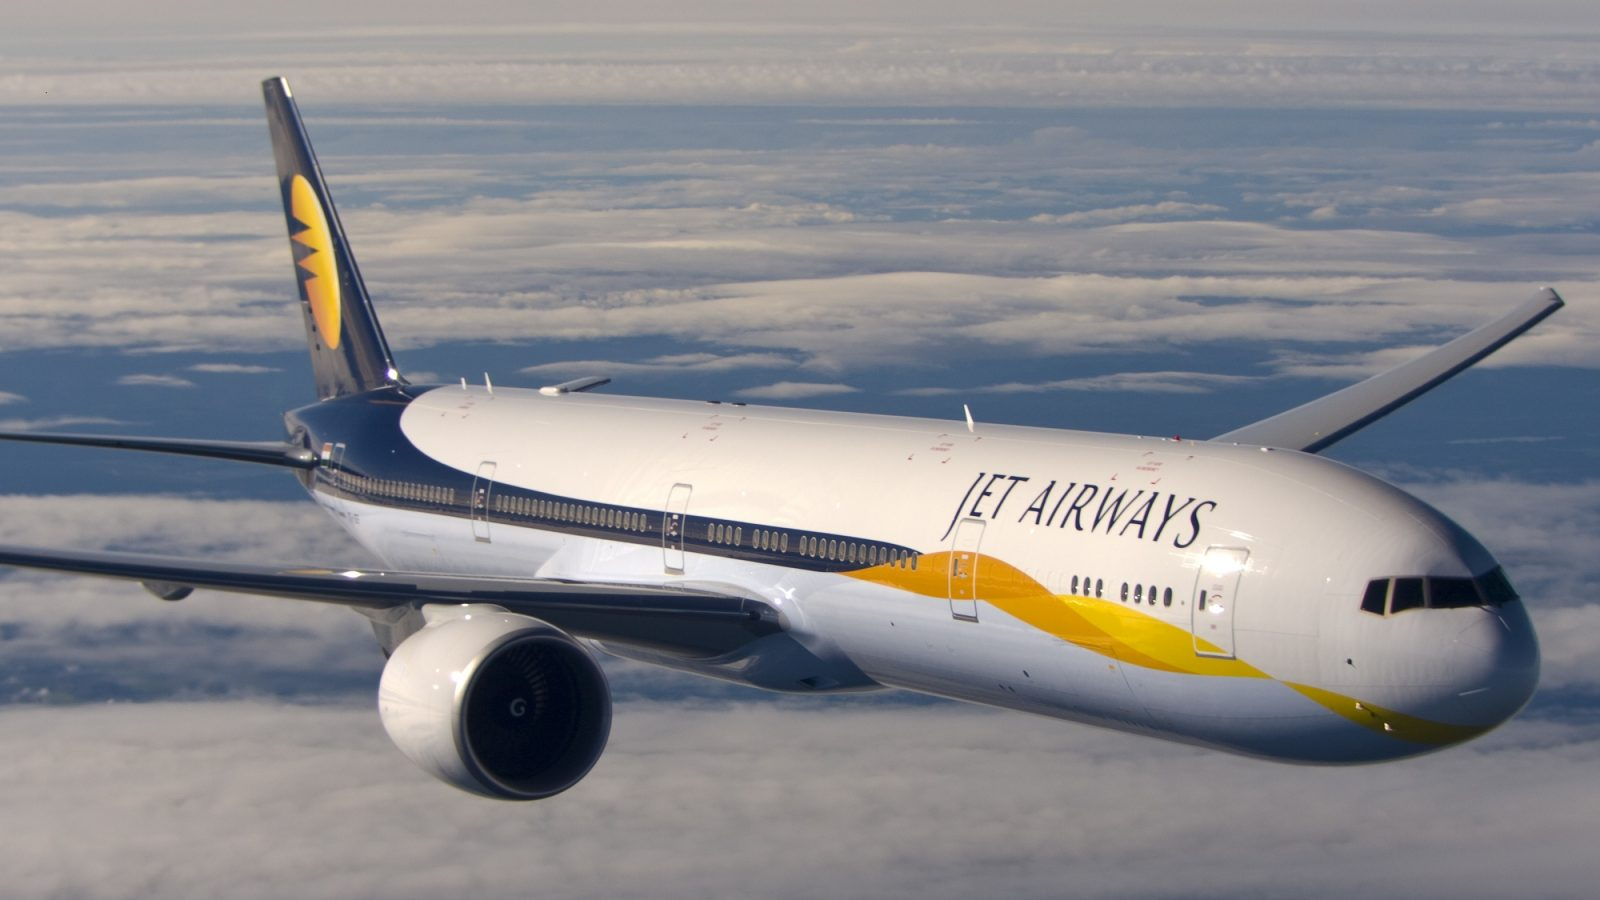 Jet Airways Offers Up To 30% Discount On International, Domestic Flight Tickets. Points of interest Here